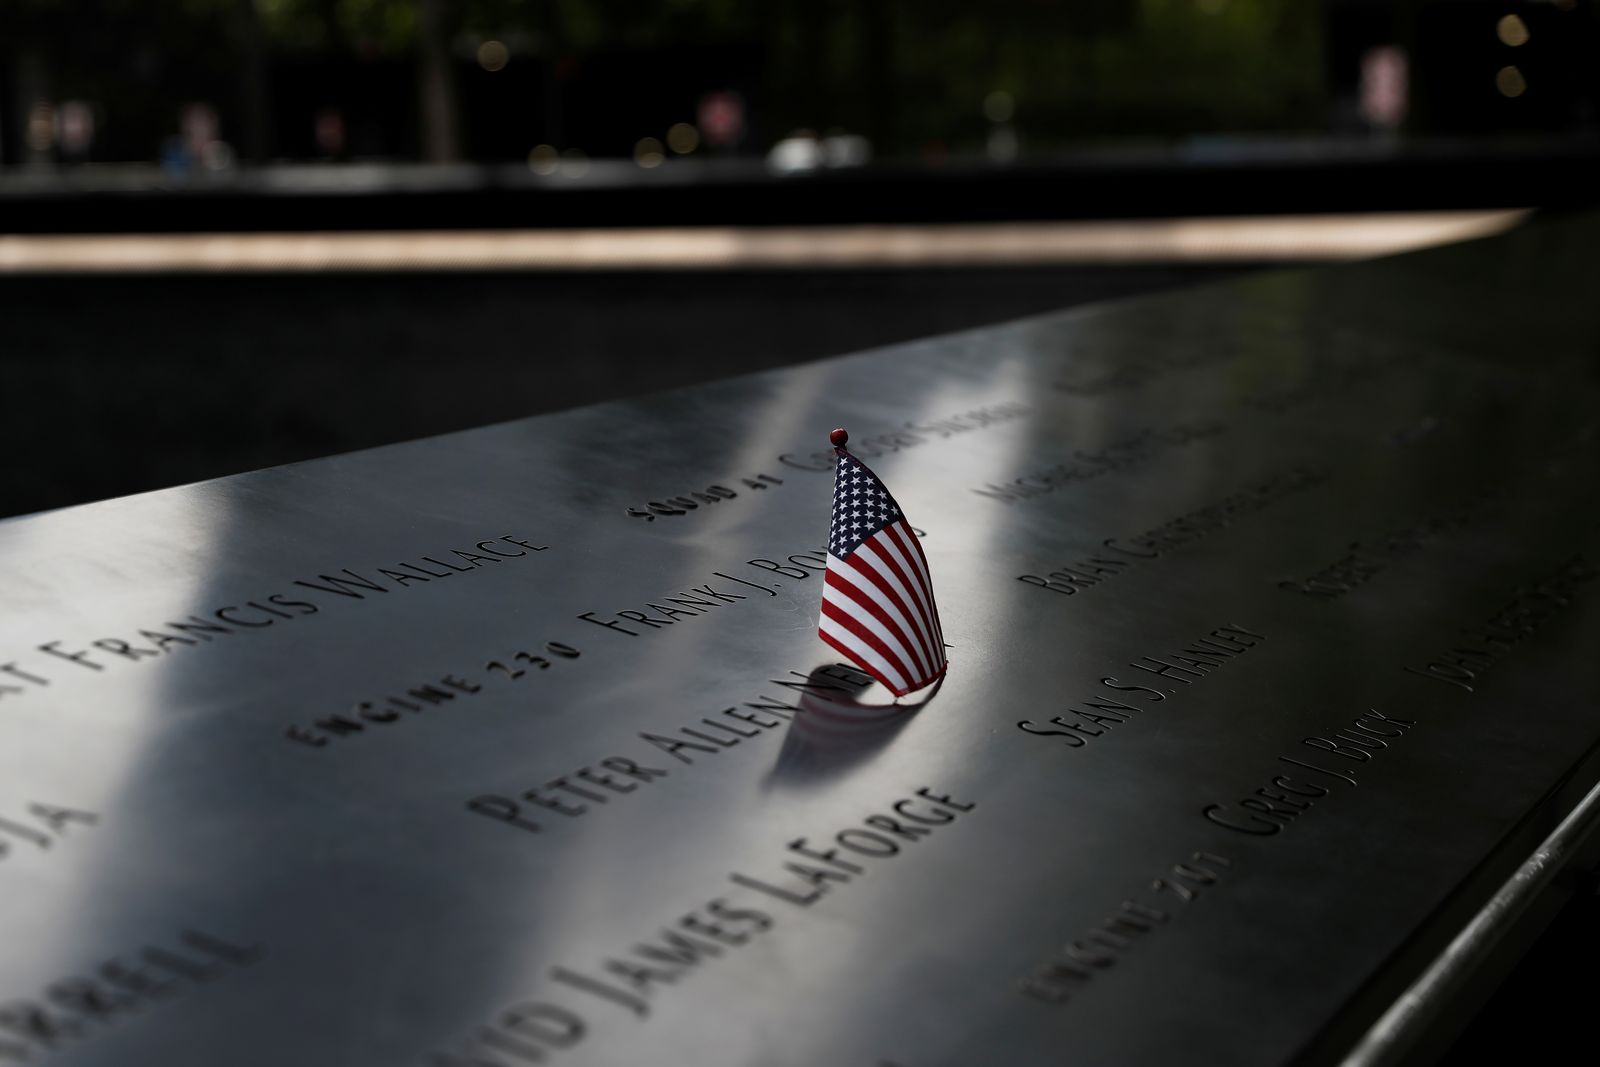 A U.S. flag is placed on one of the victims' names at the south reflecting pool of the National 9/11 Memorial, two days before the 19th anniversary of attacks, amid the coronavirus disease (COVID-19) pandemic, in the lower section Manhattan, New York City